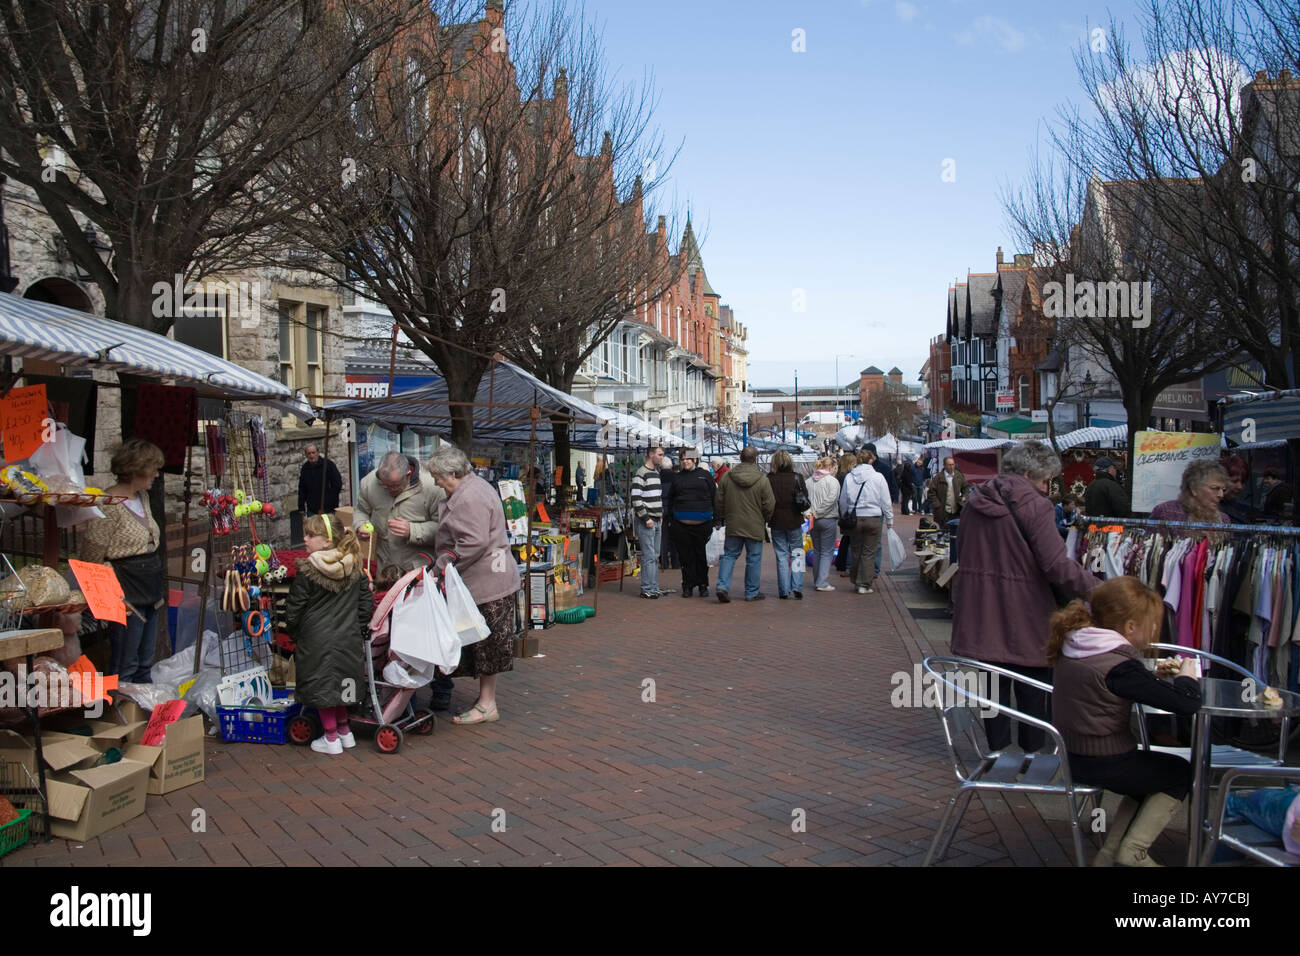 Colwyn Bay North Wales UK April Looking down Station Road busy with shoppers at the weekly Saturday market - Stock Image